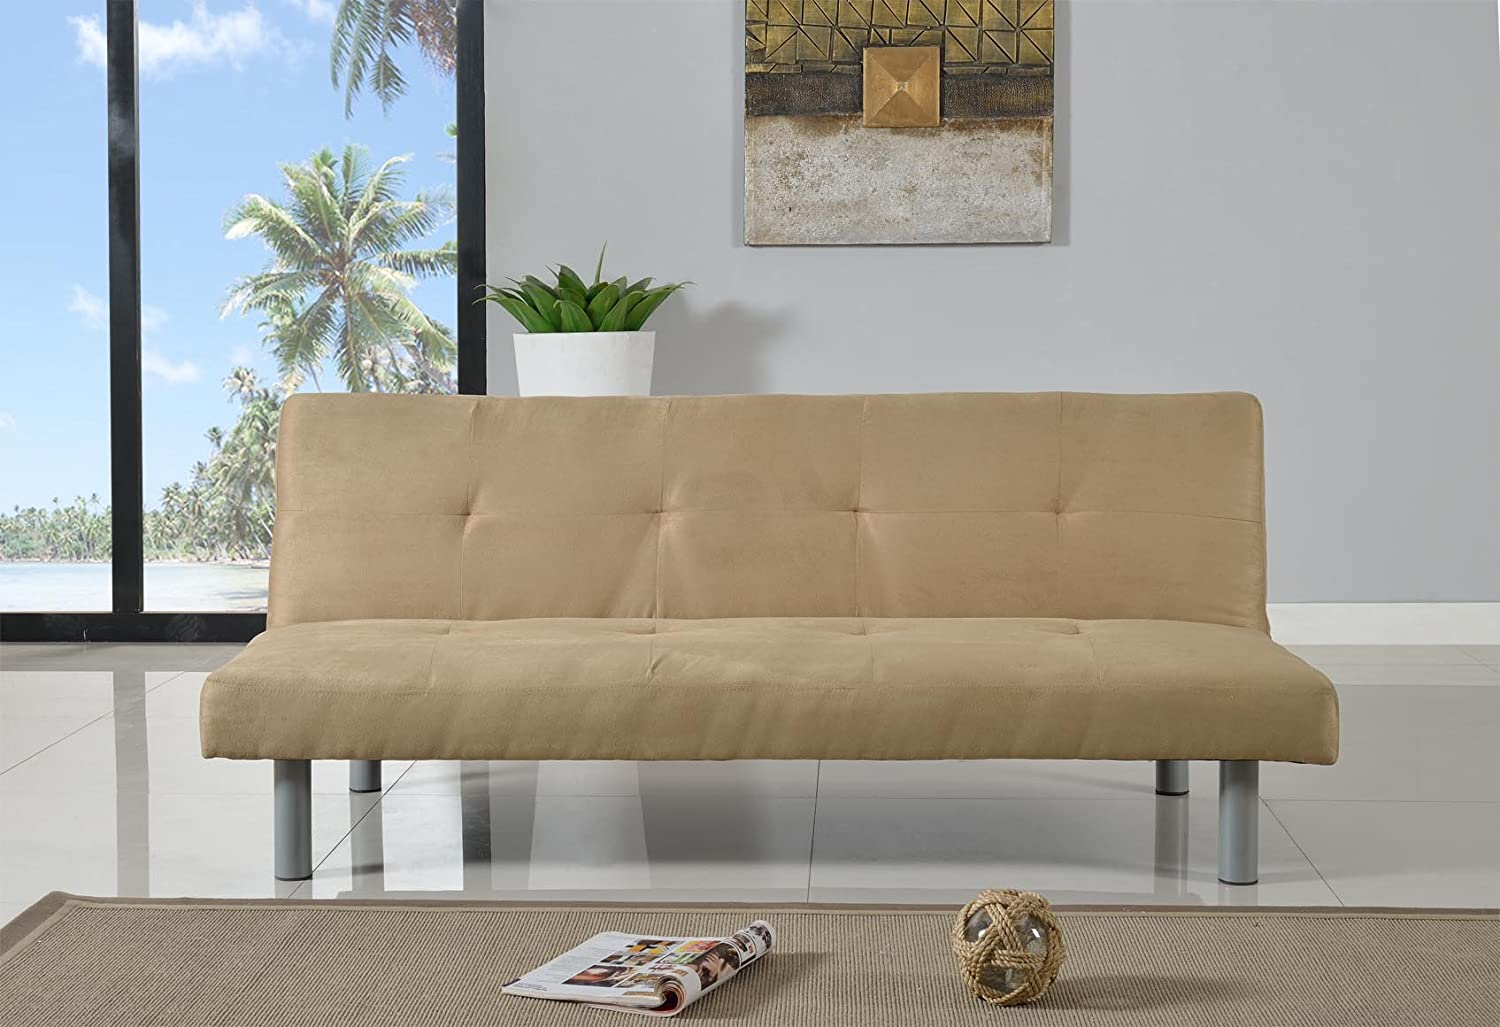 Comfy Living Faux Suede 3 Seater Quality Sofa Bed - Click Clac fabric sofabed in CREAM